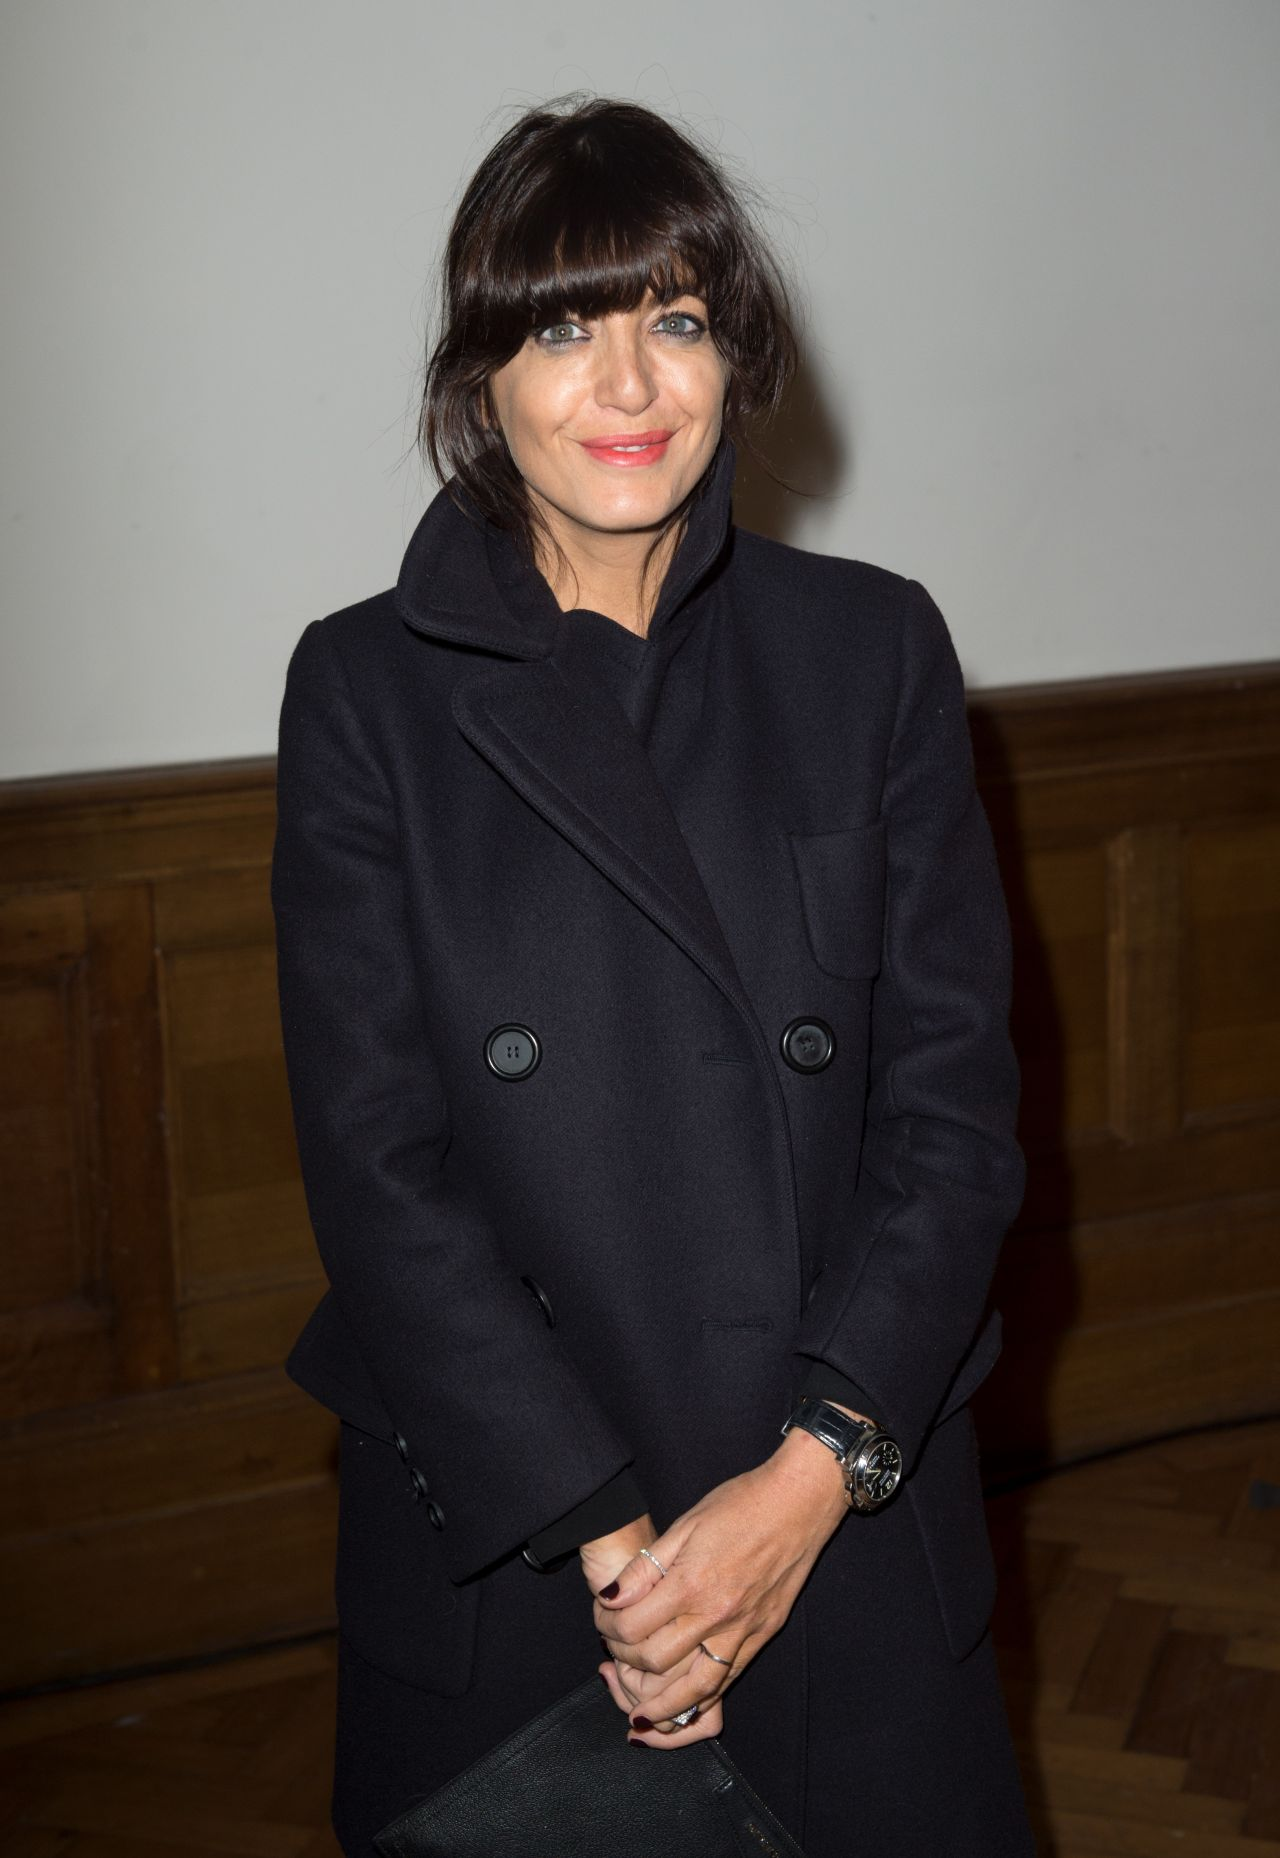 Celebrites Claudia Winkleman nude (44 foto and video), Ass, Cleavage, Twitter, cleavage 2006